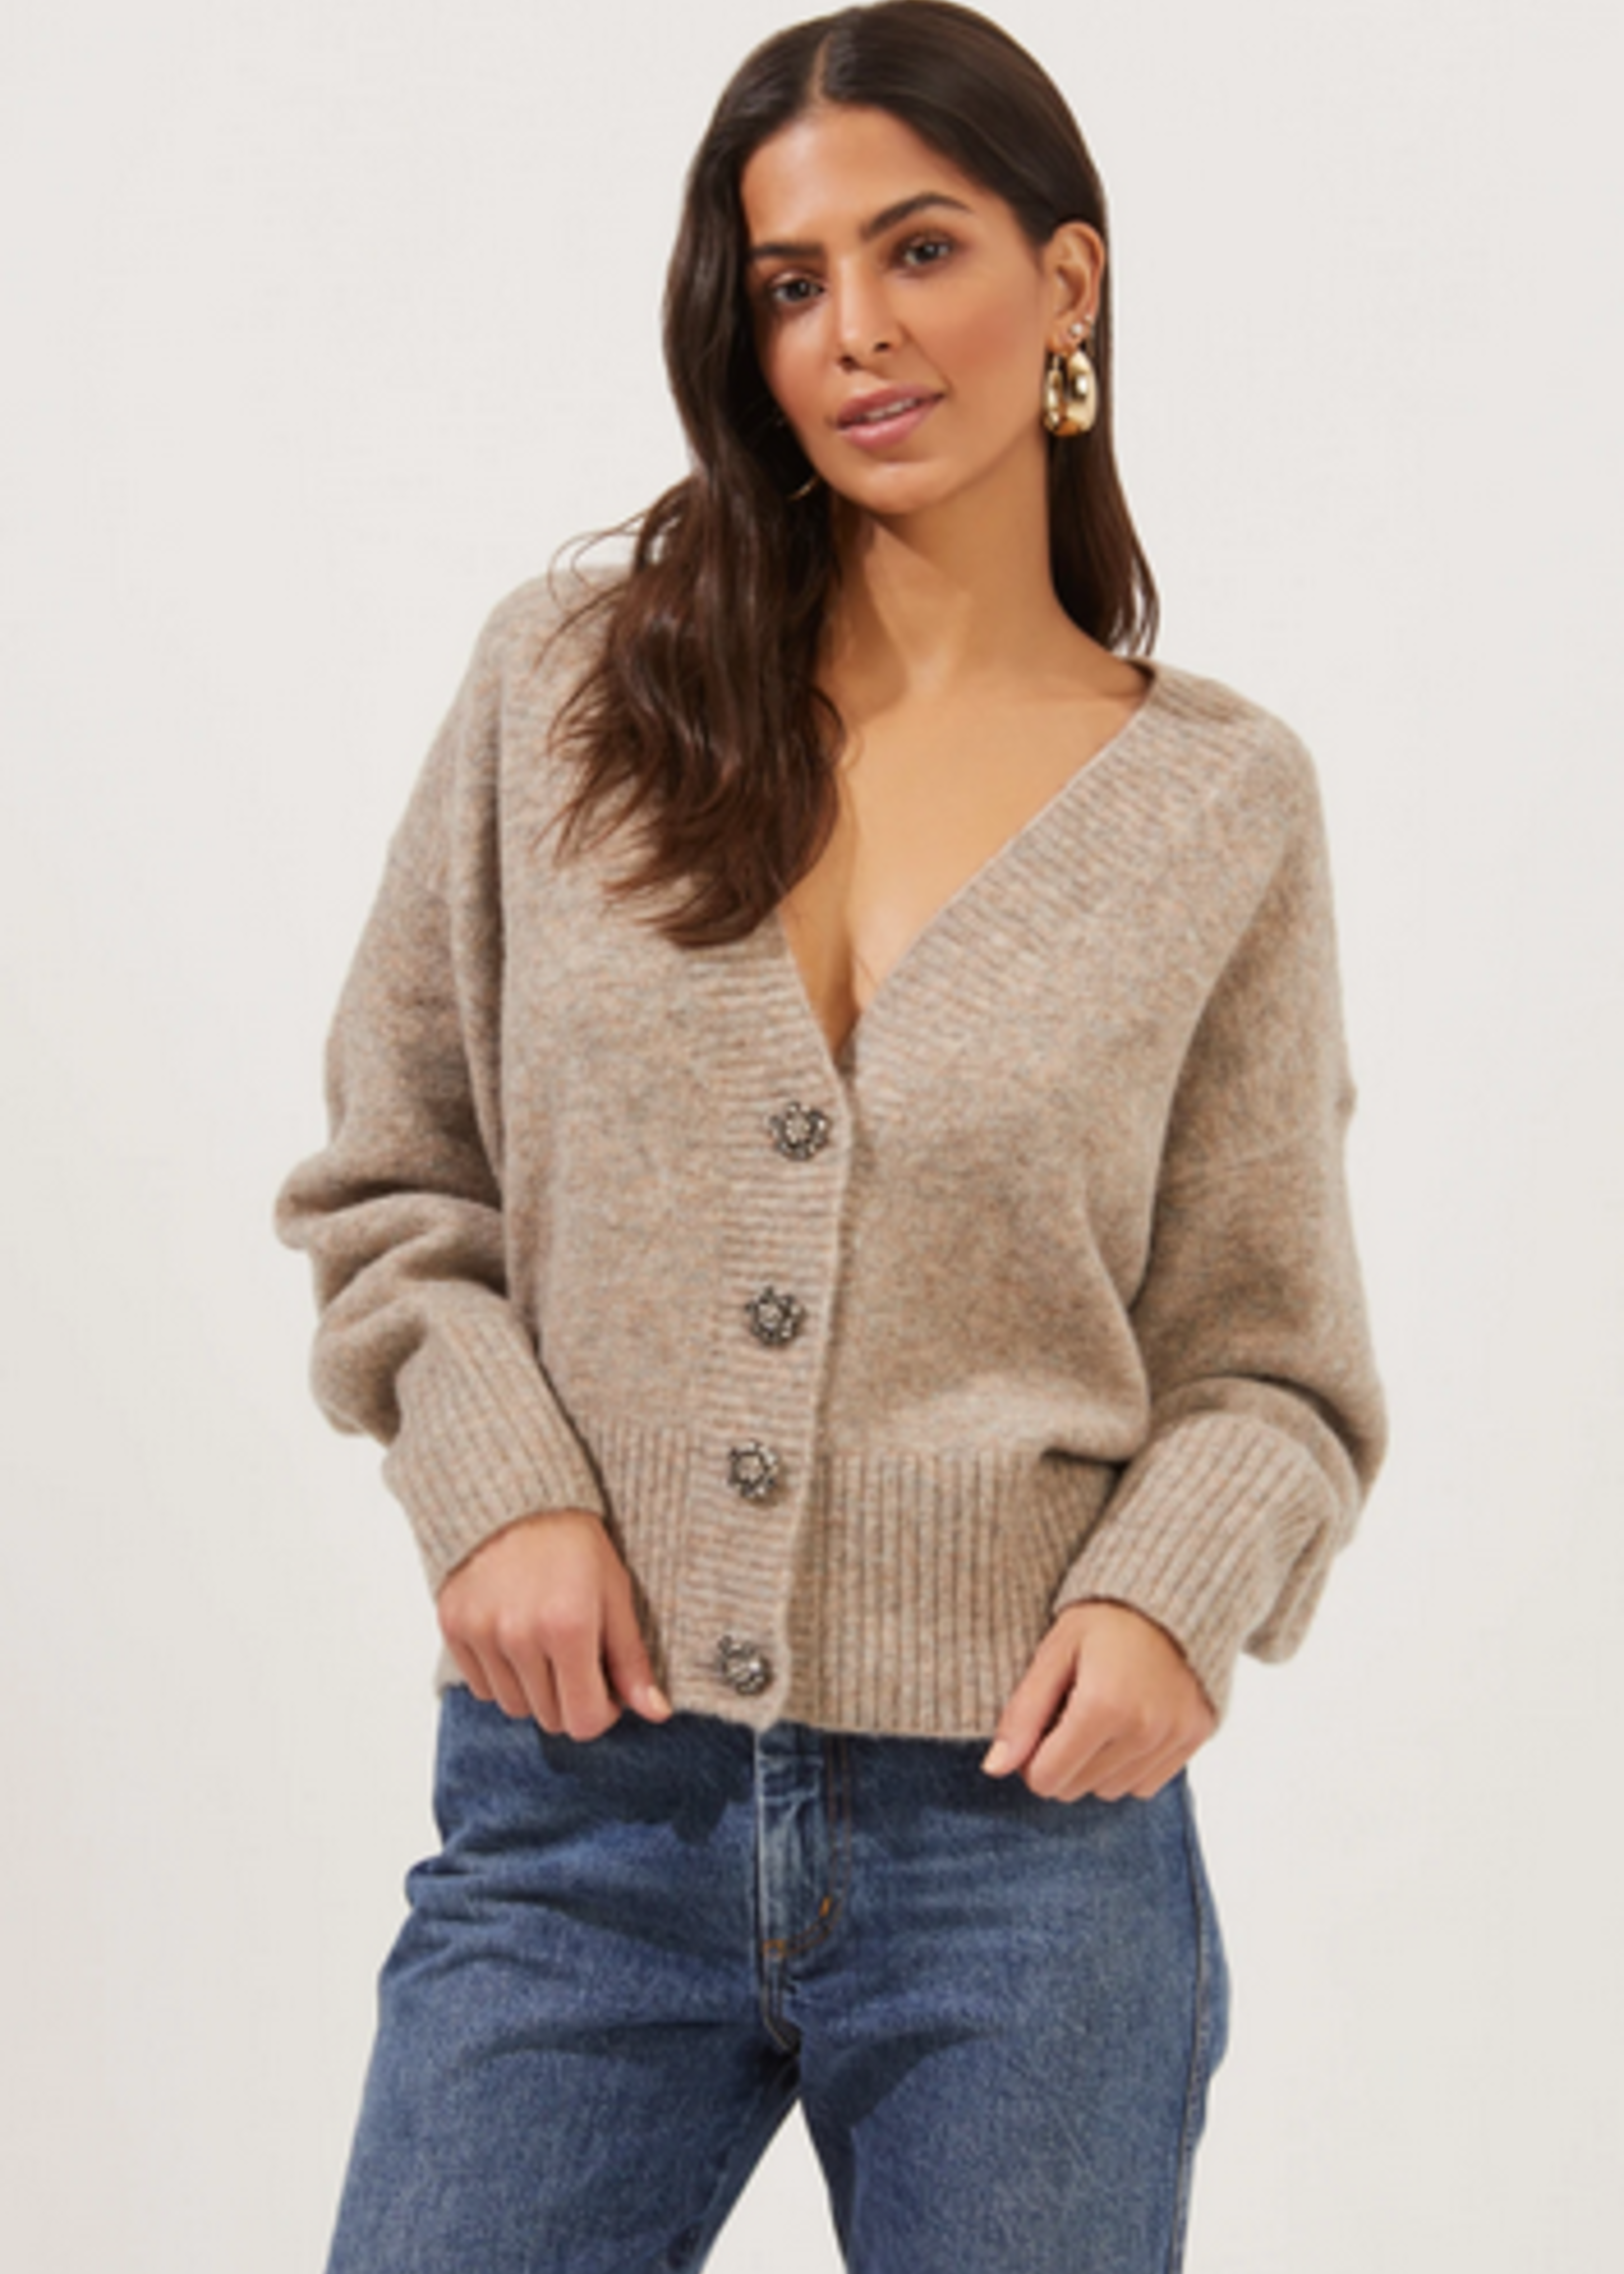 Elitaire Boutique Belmont Cardigan in Taupe